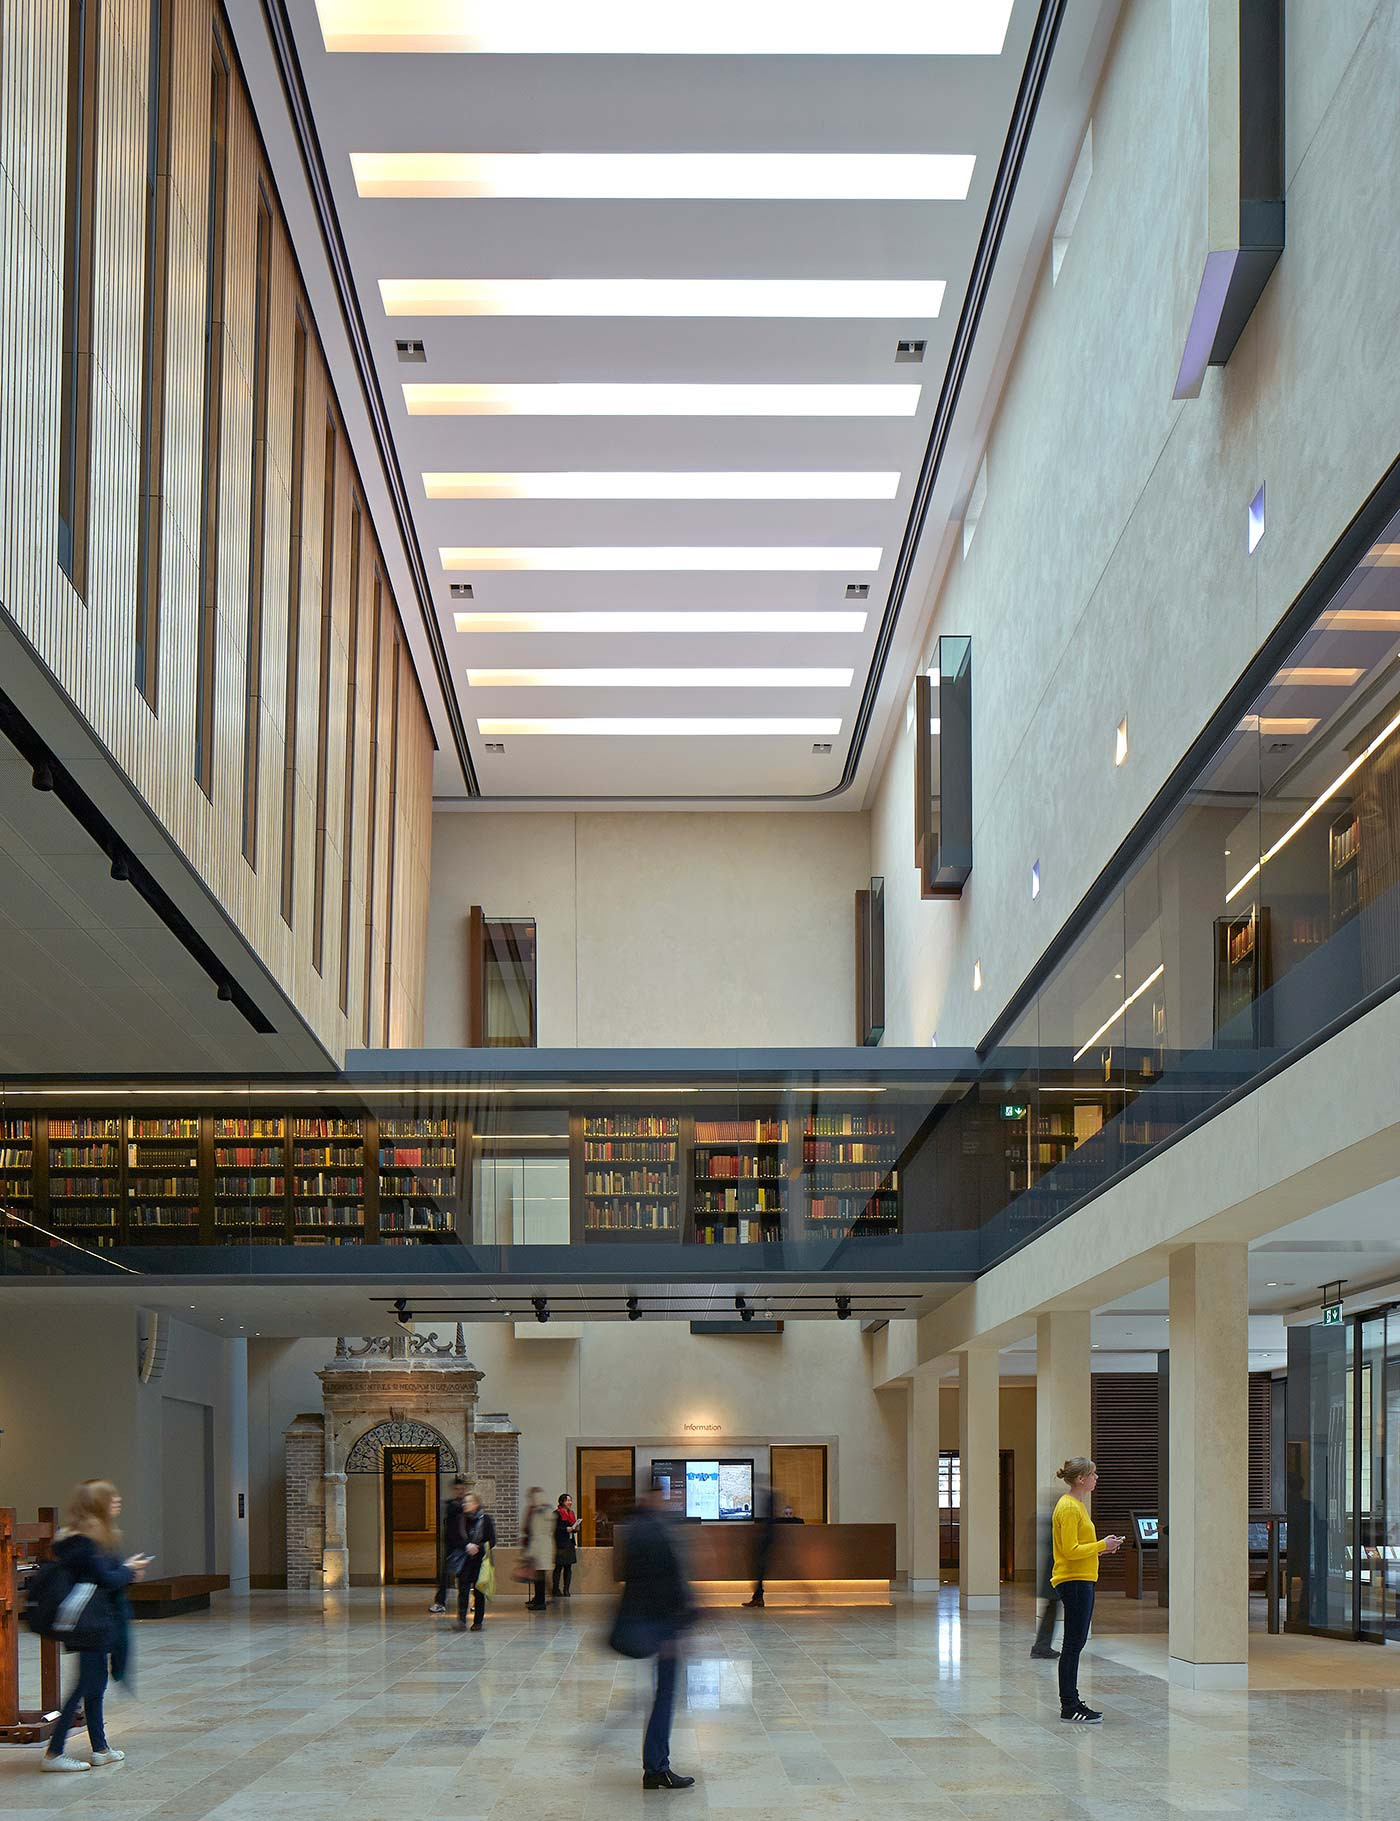 weston library acquisitions gallery